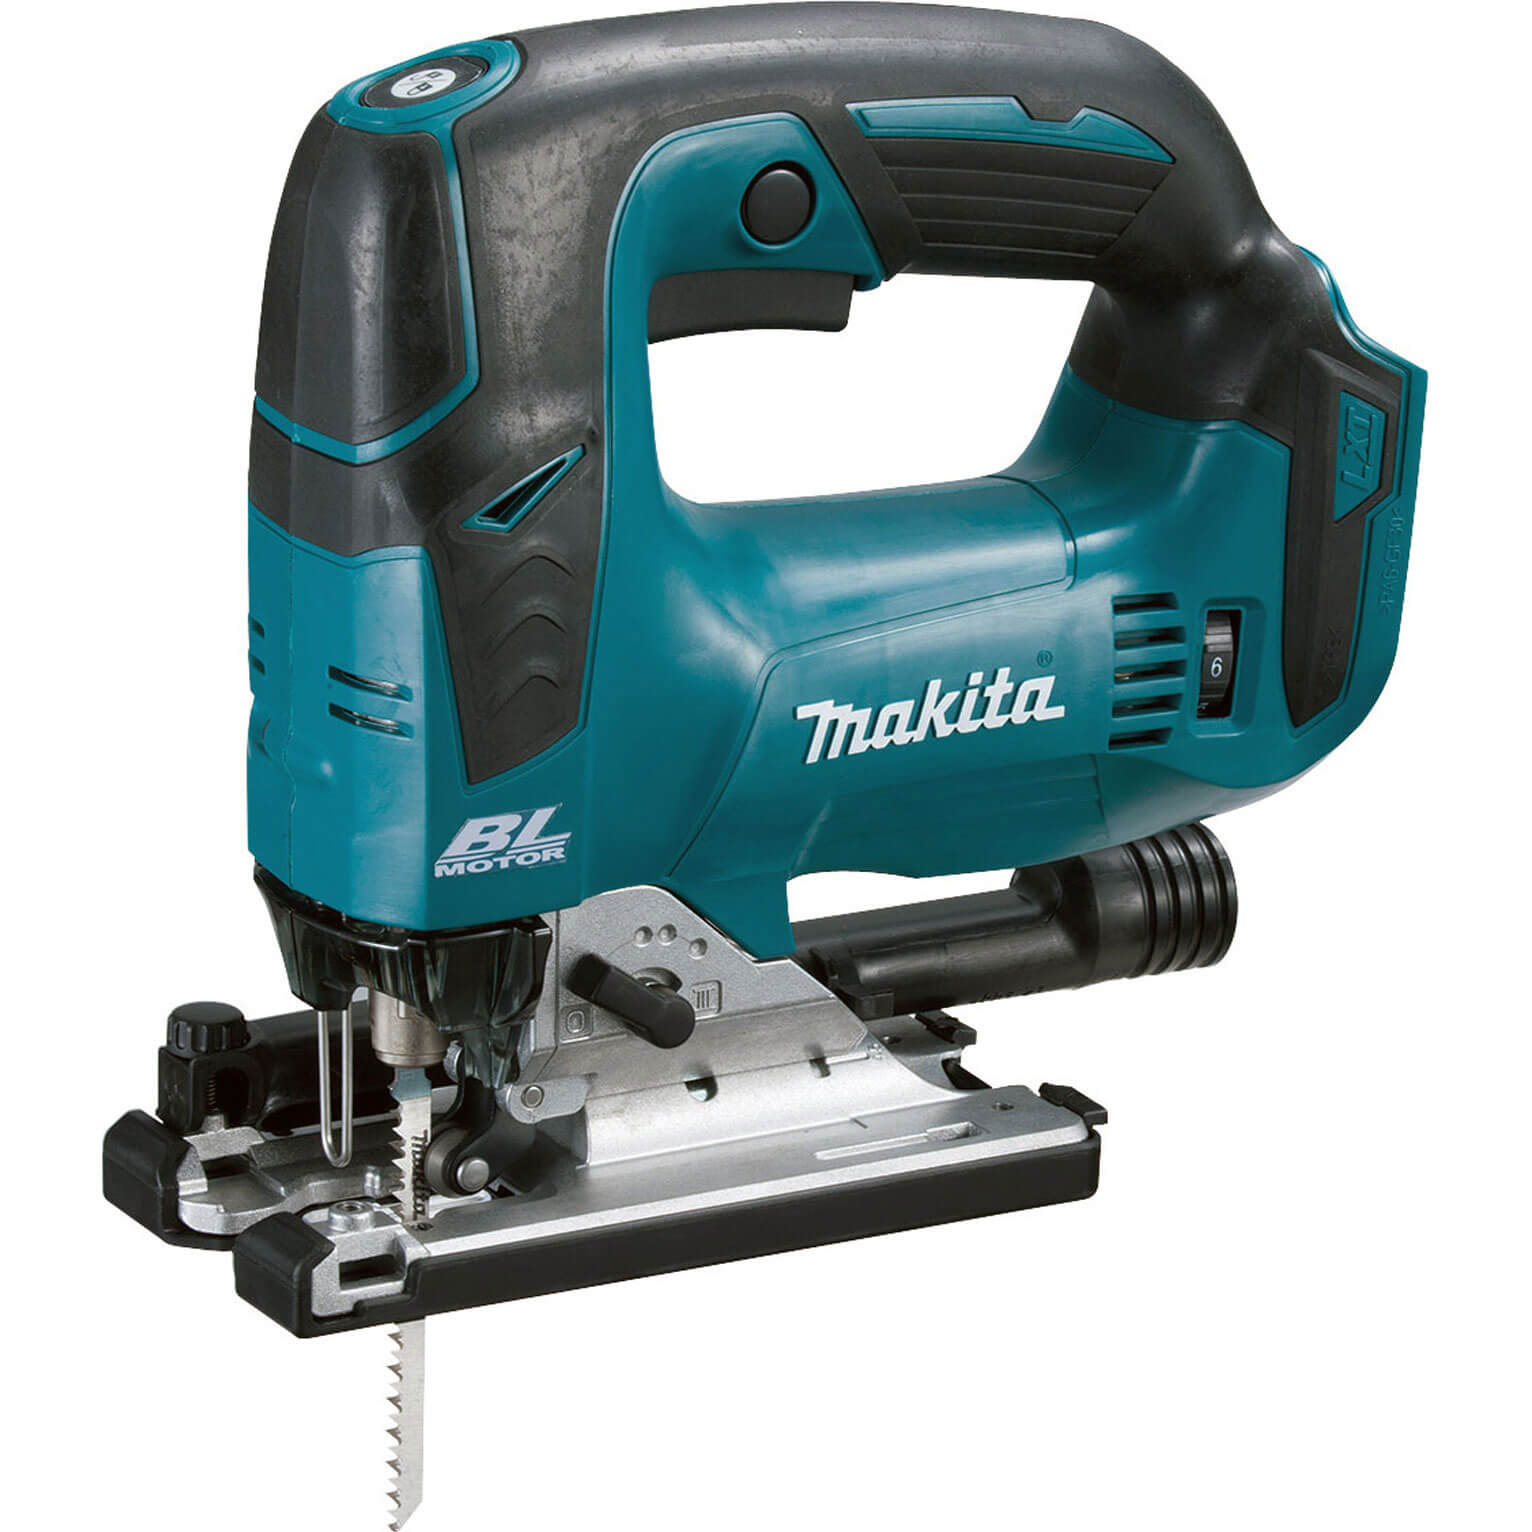 Image of Makita DJV182Z LXT 18v Brushless Cordless Jigsaw without Battery or Charger